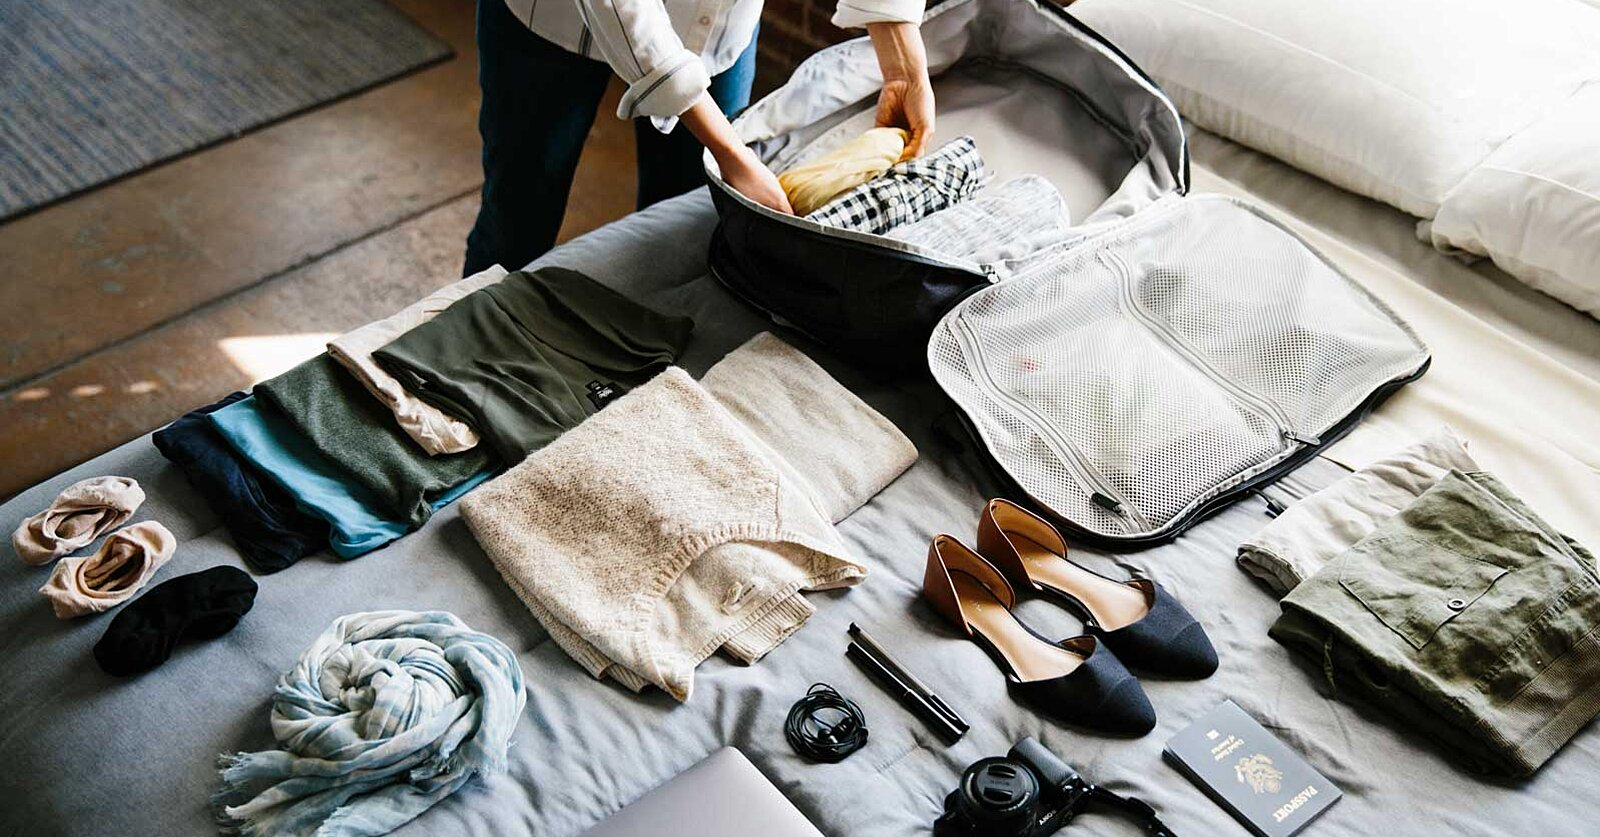 3 Tips for Packing Lighter Every Single Time, According to Tortuga Backpacks' Co-founder